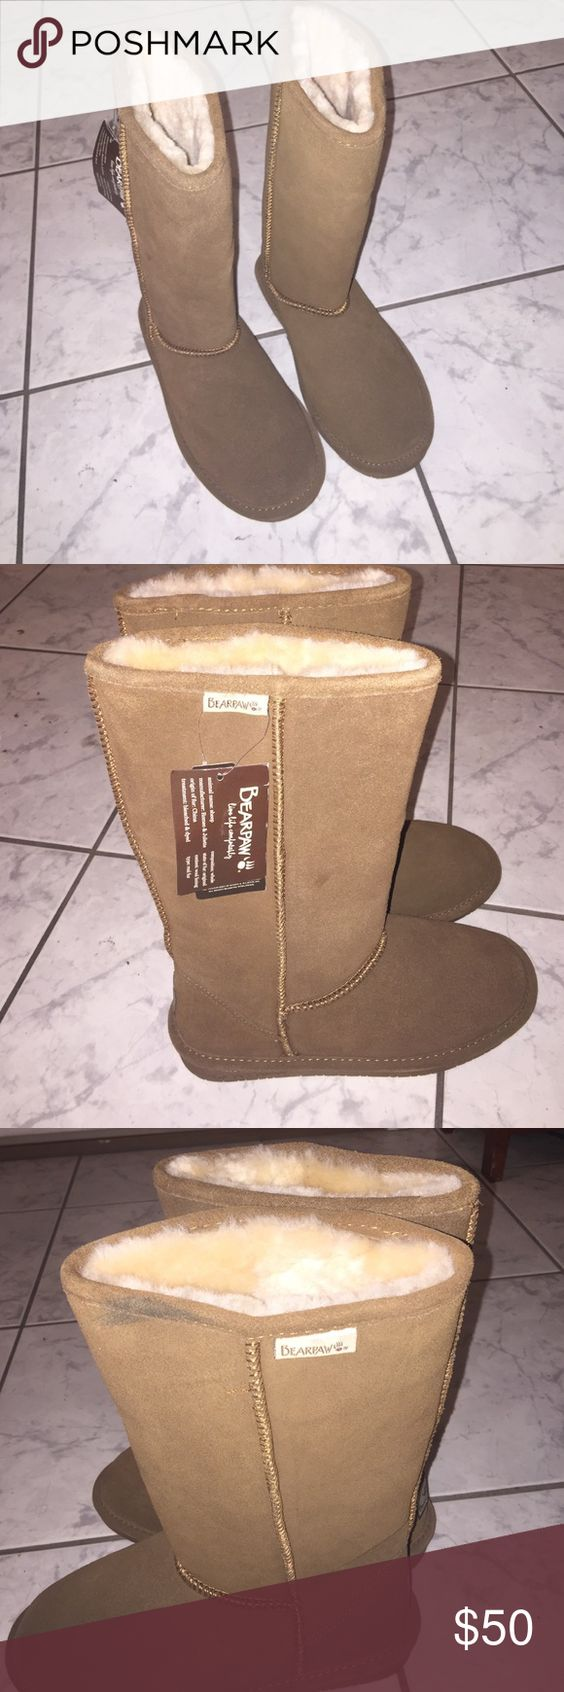 Bearpaw boots Brand new with tags. Never worn. There is a dirty spot as pictures but I'm sure it comes off. Size 8. I have too many boots. Cleaning out items I never used BearPaw Shoes Winter & Rain Boots